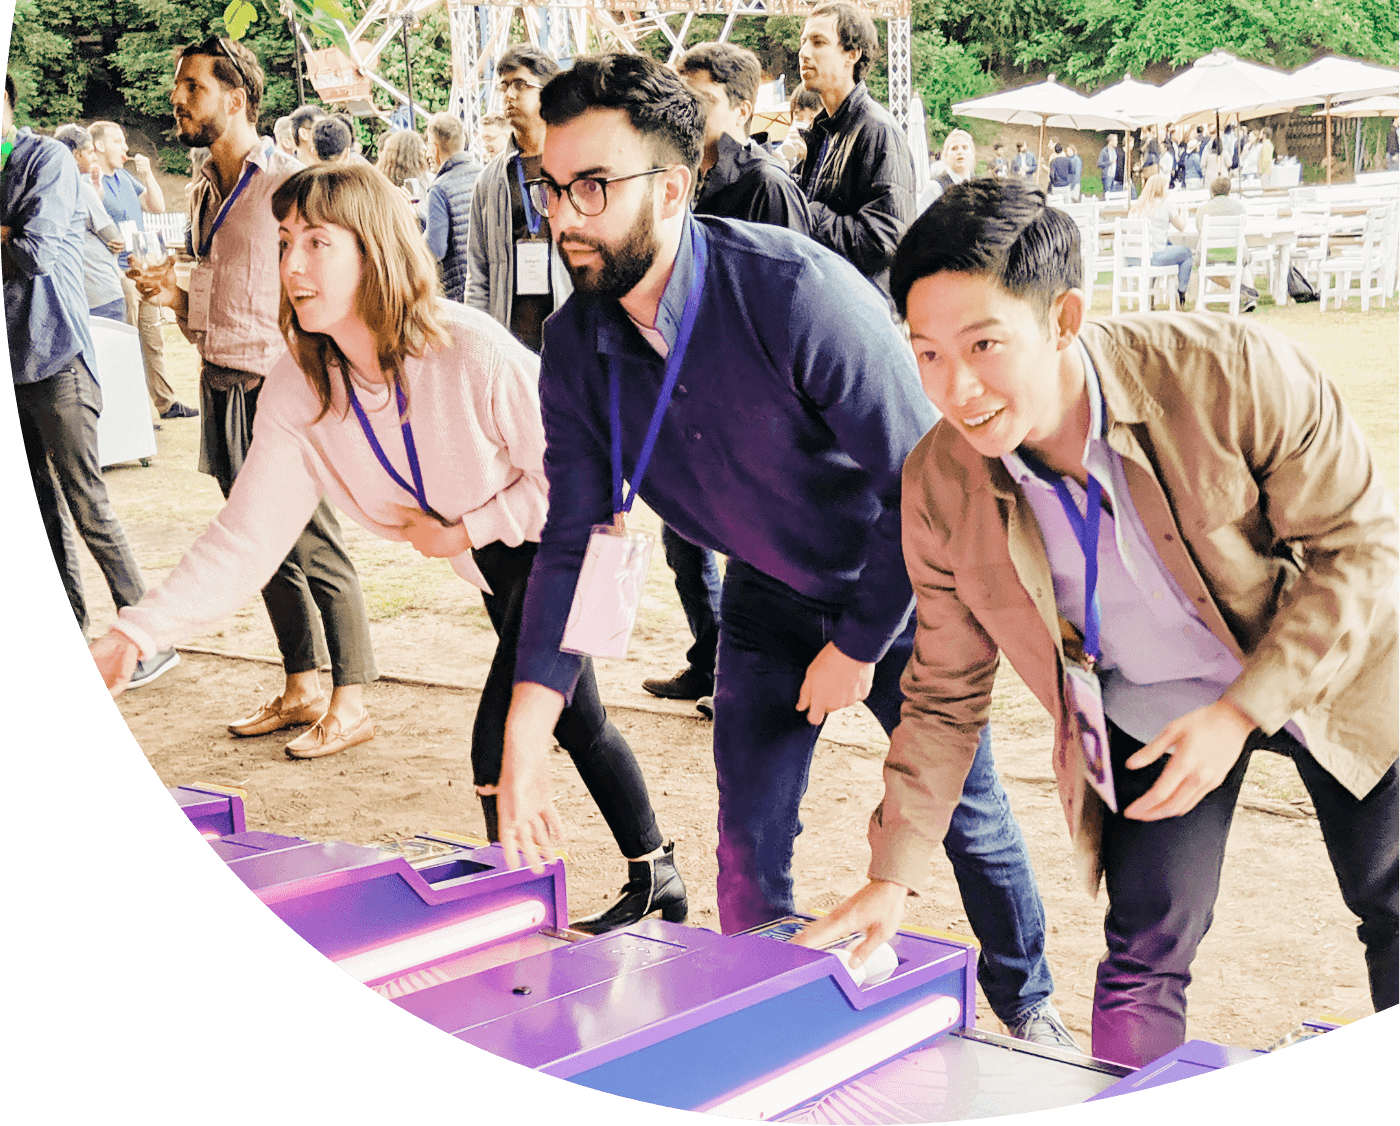 Employees at an event